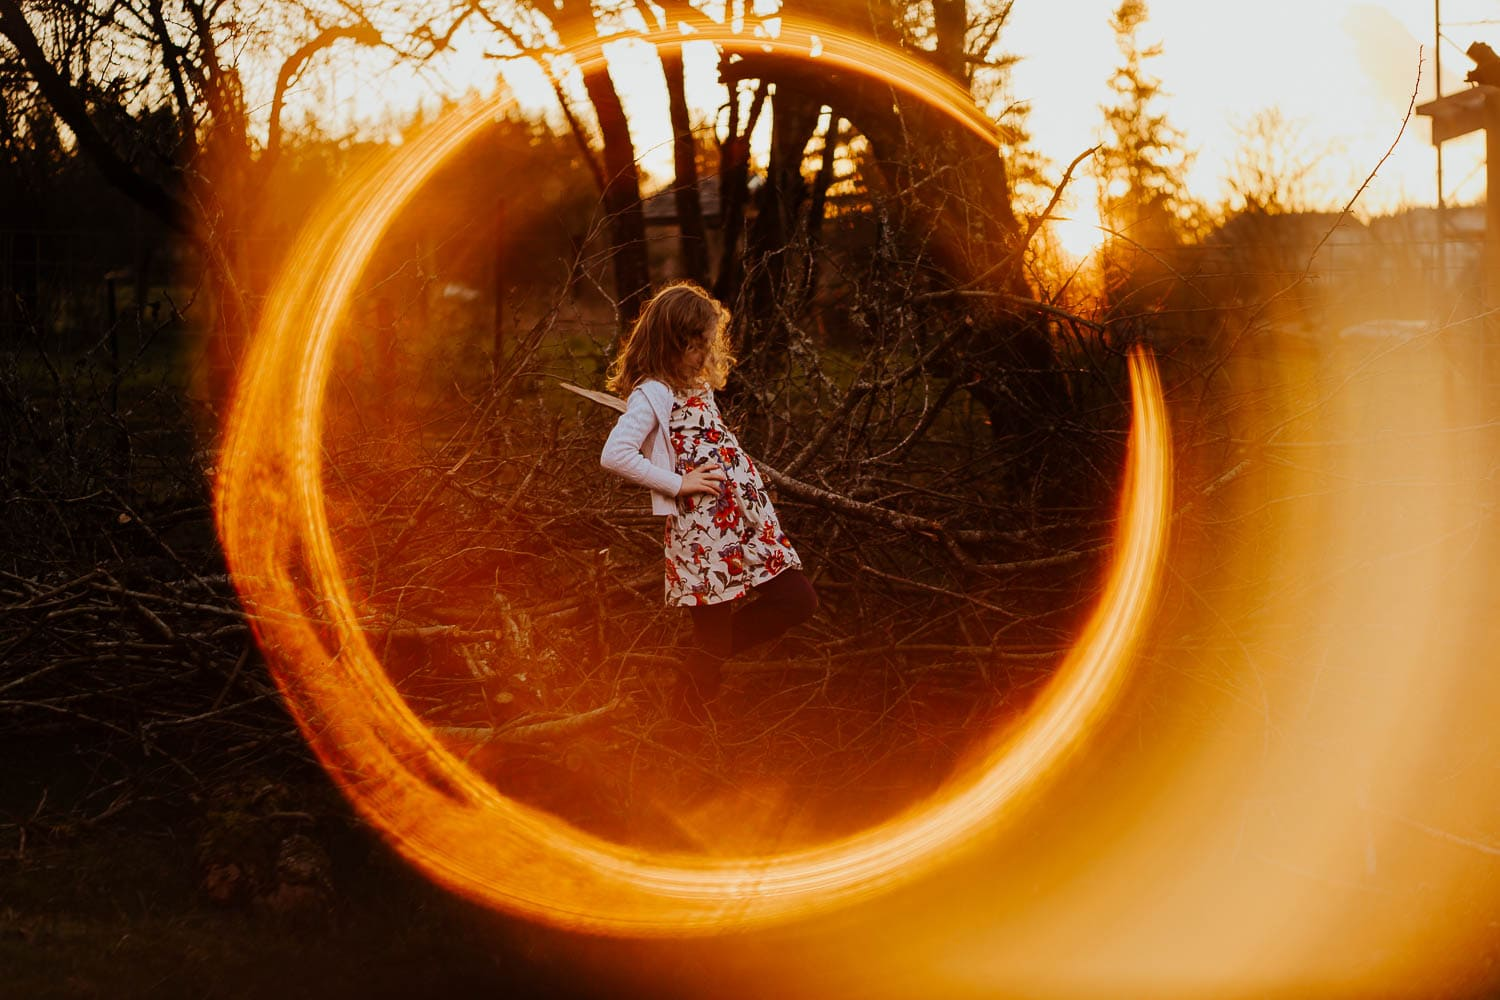 Little girl outside with ring of fire around her - photography tutorial